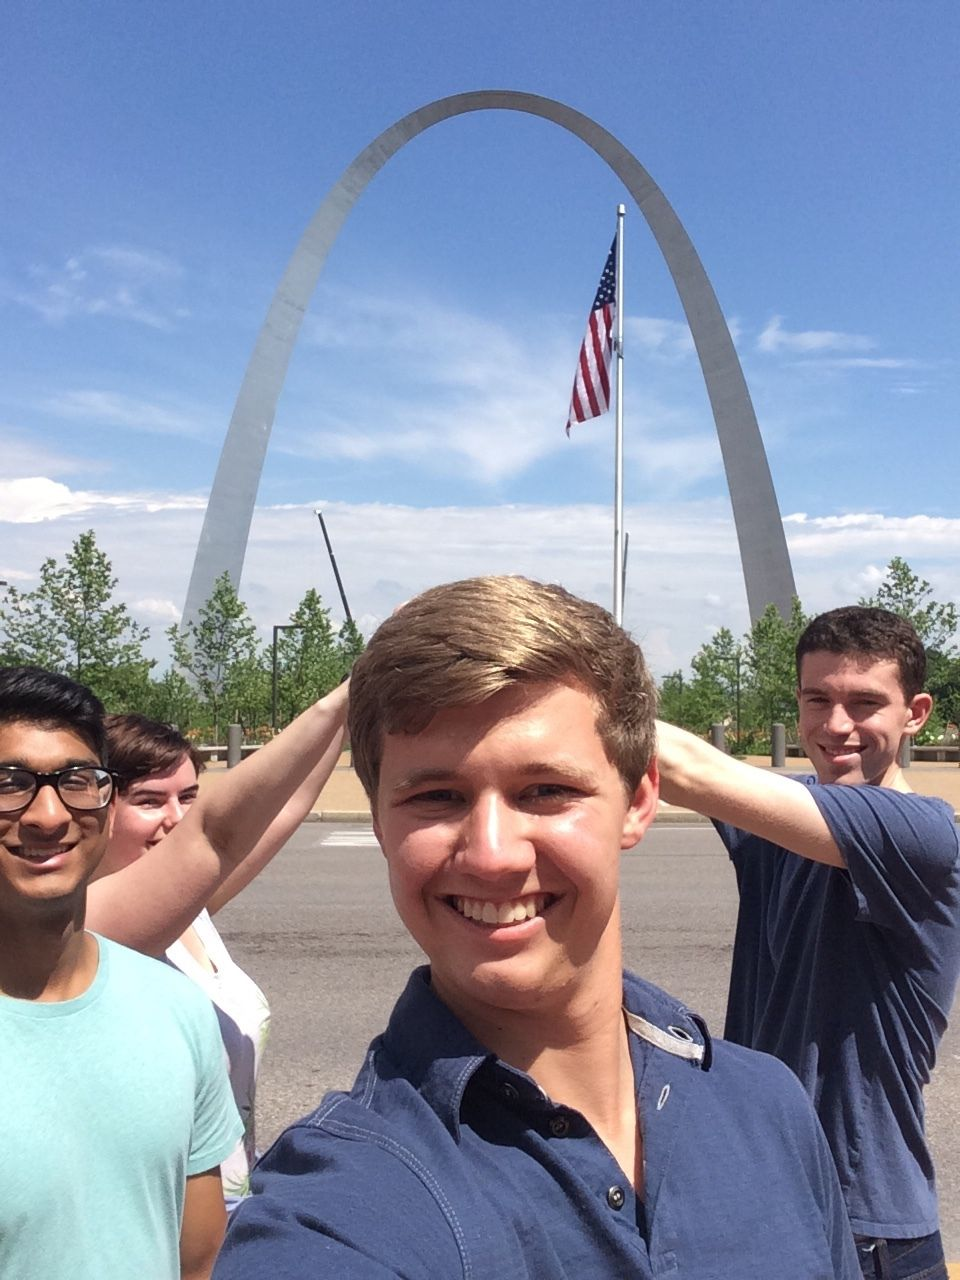 Less Annoying Interns in front of the arch